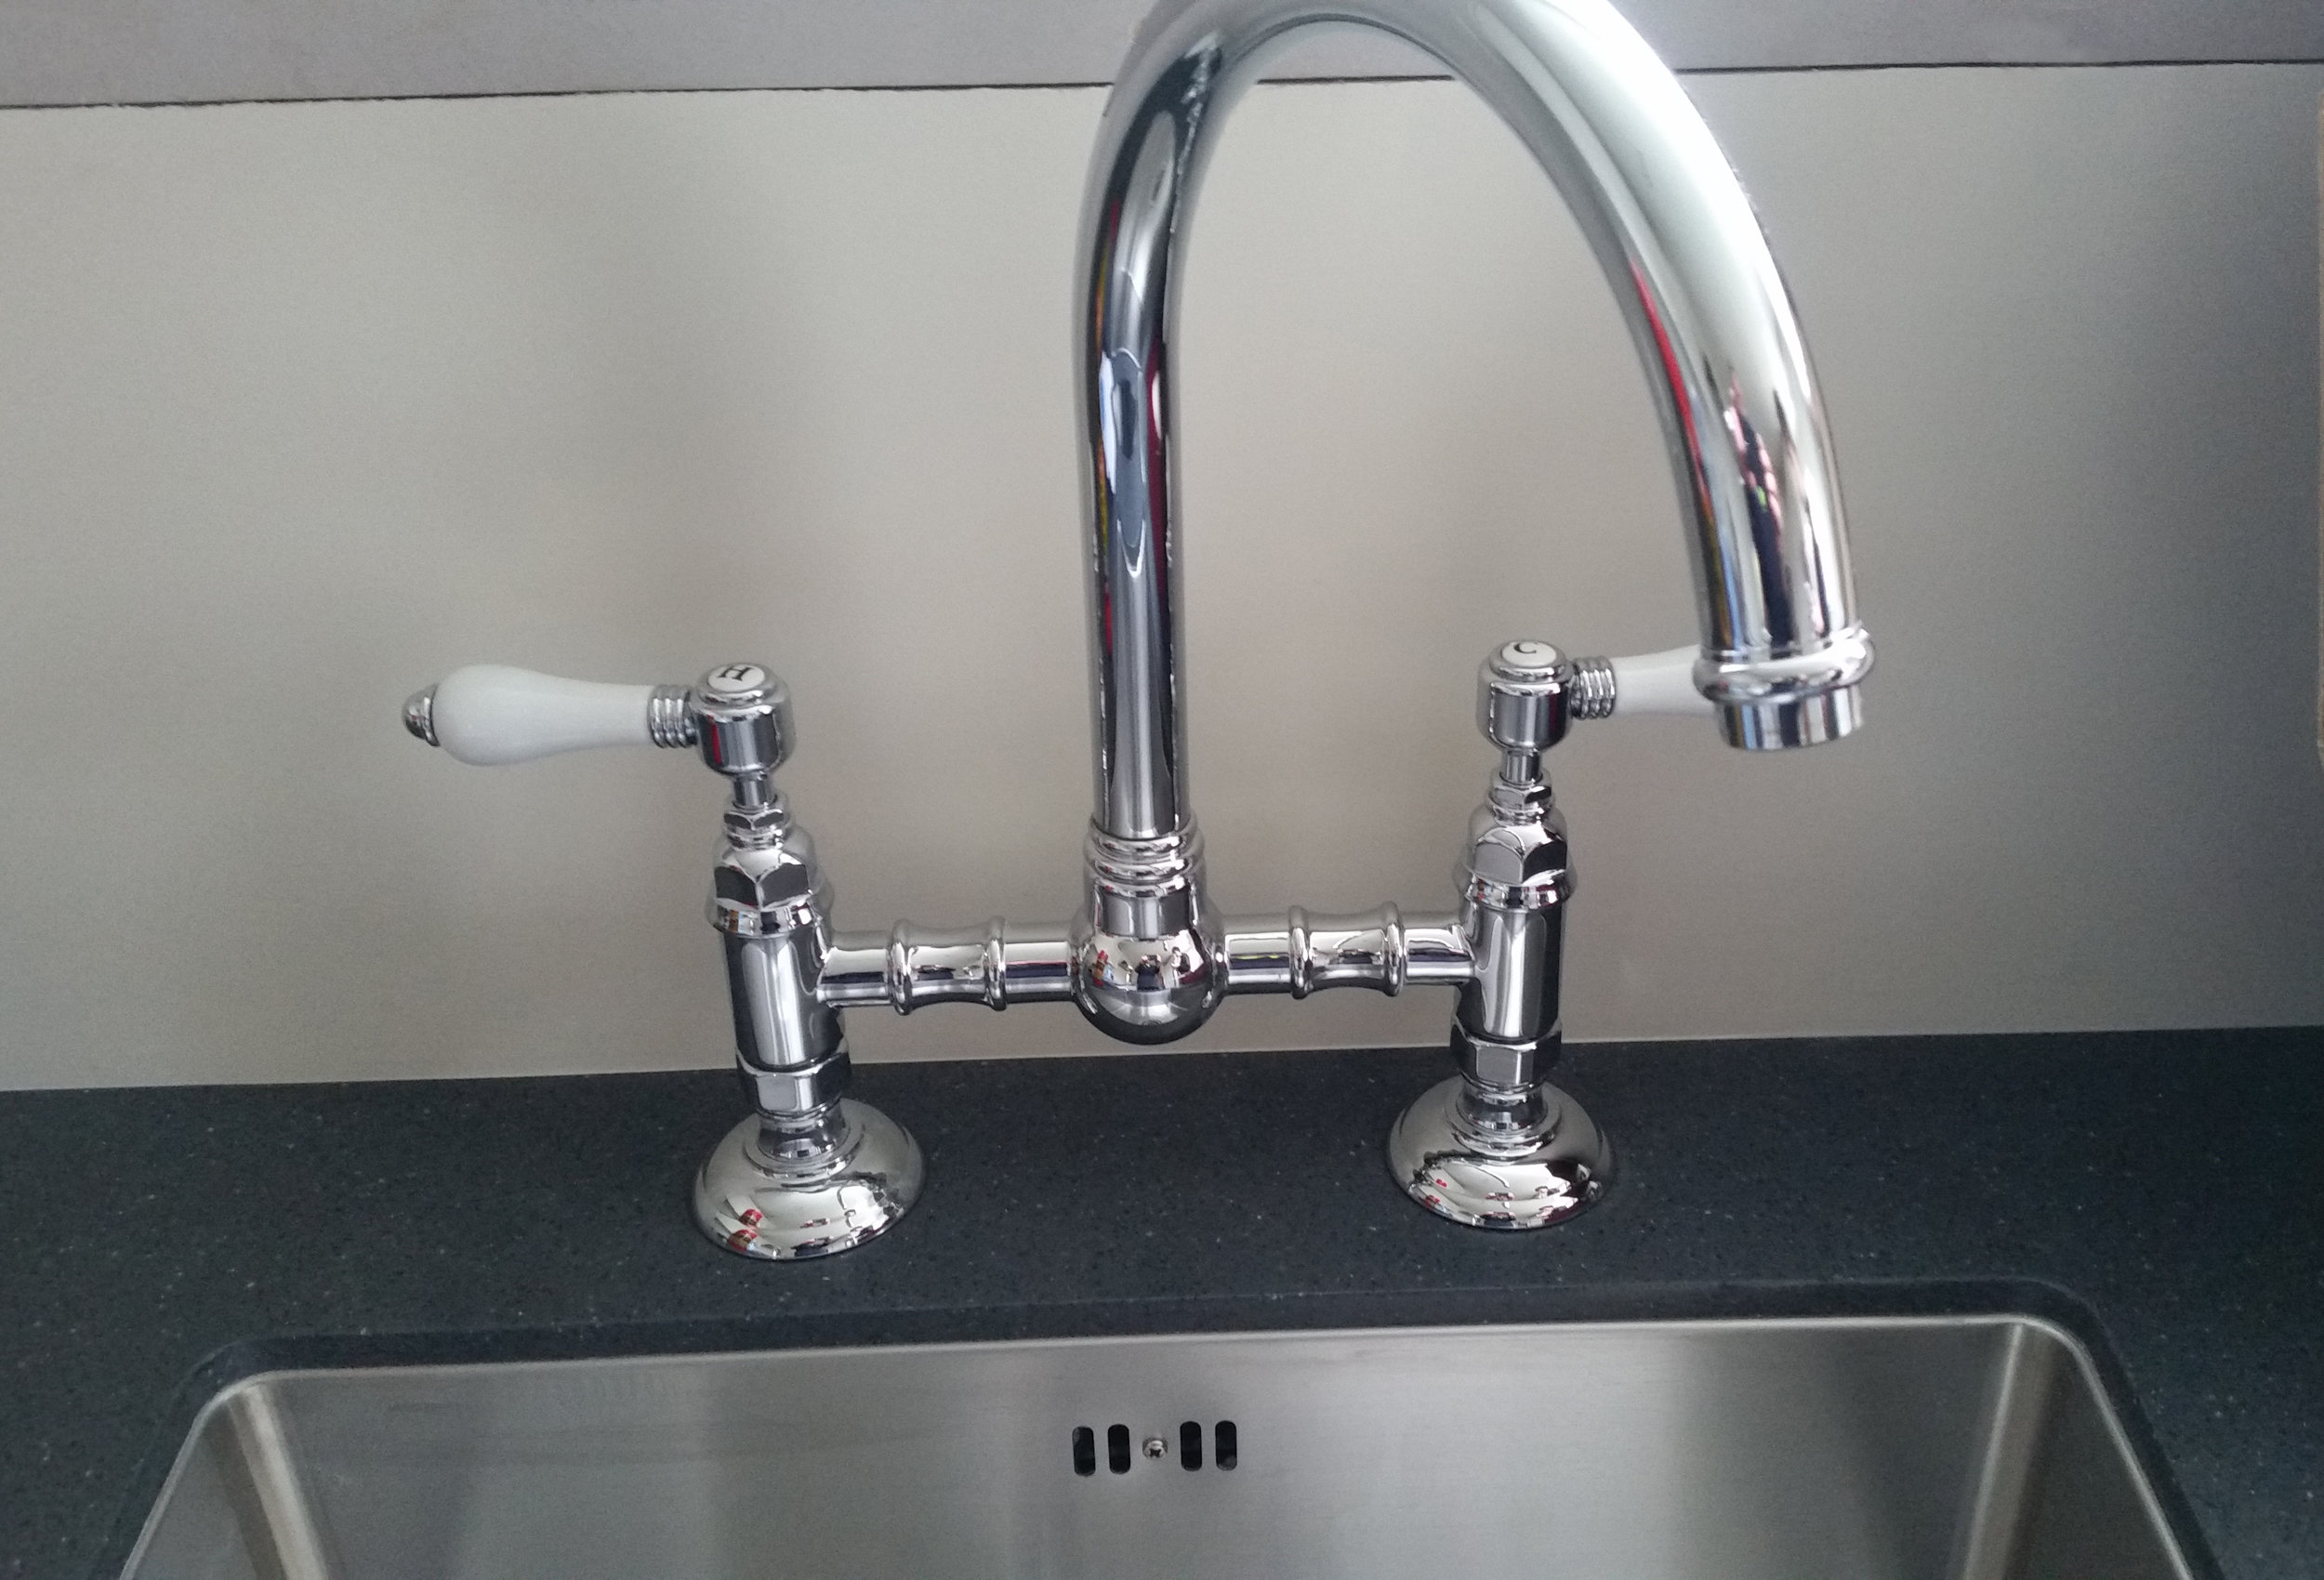 New kitchen tapware installation